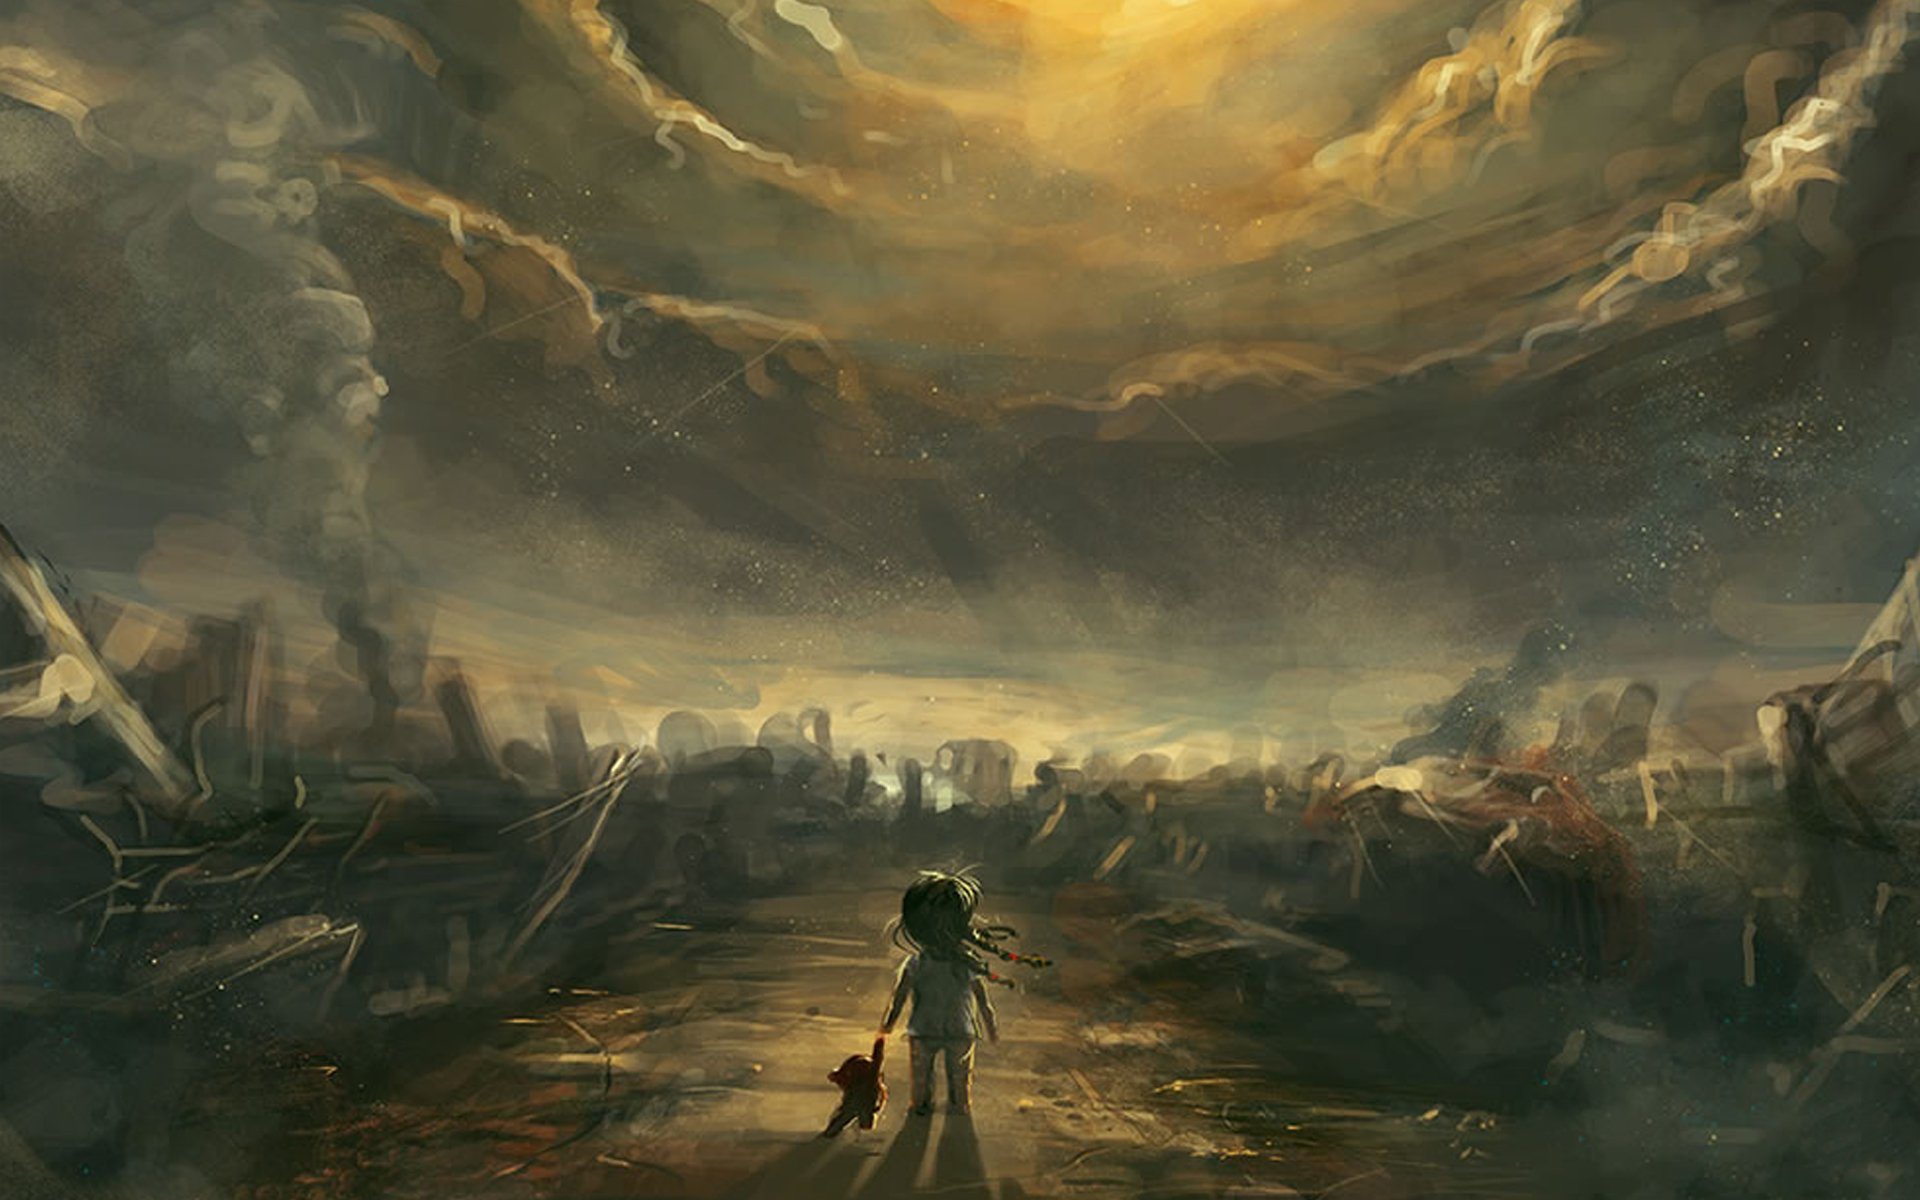 Post apocalyptic artwork wallpaper 1920x1200 196532 WallpaperUP 1920x1200